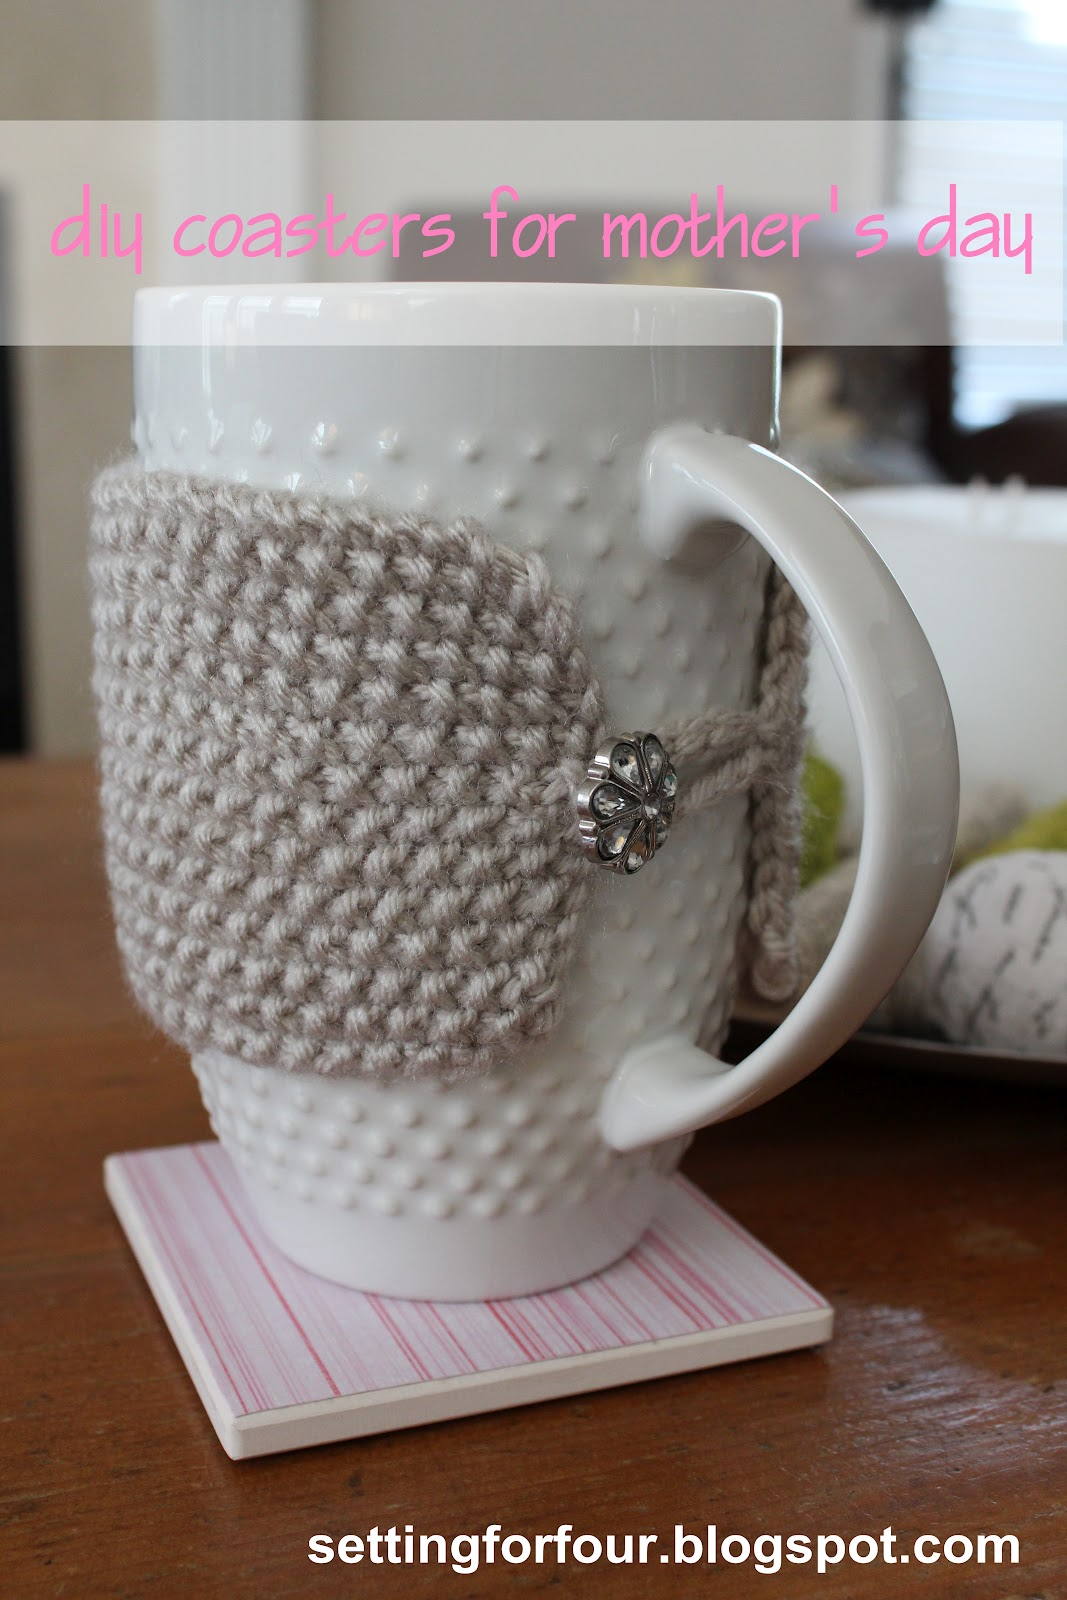 How To Make Easy Mod Podge Gift Diy Coasters Setting For